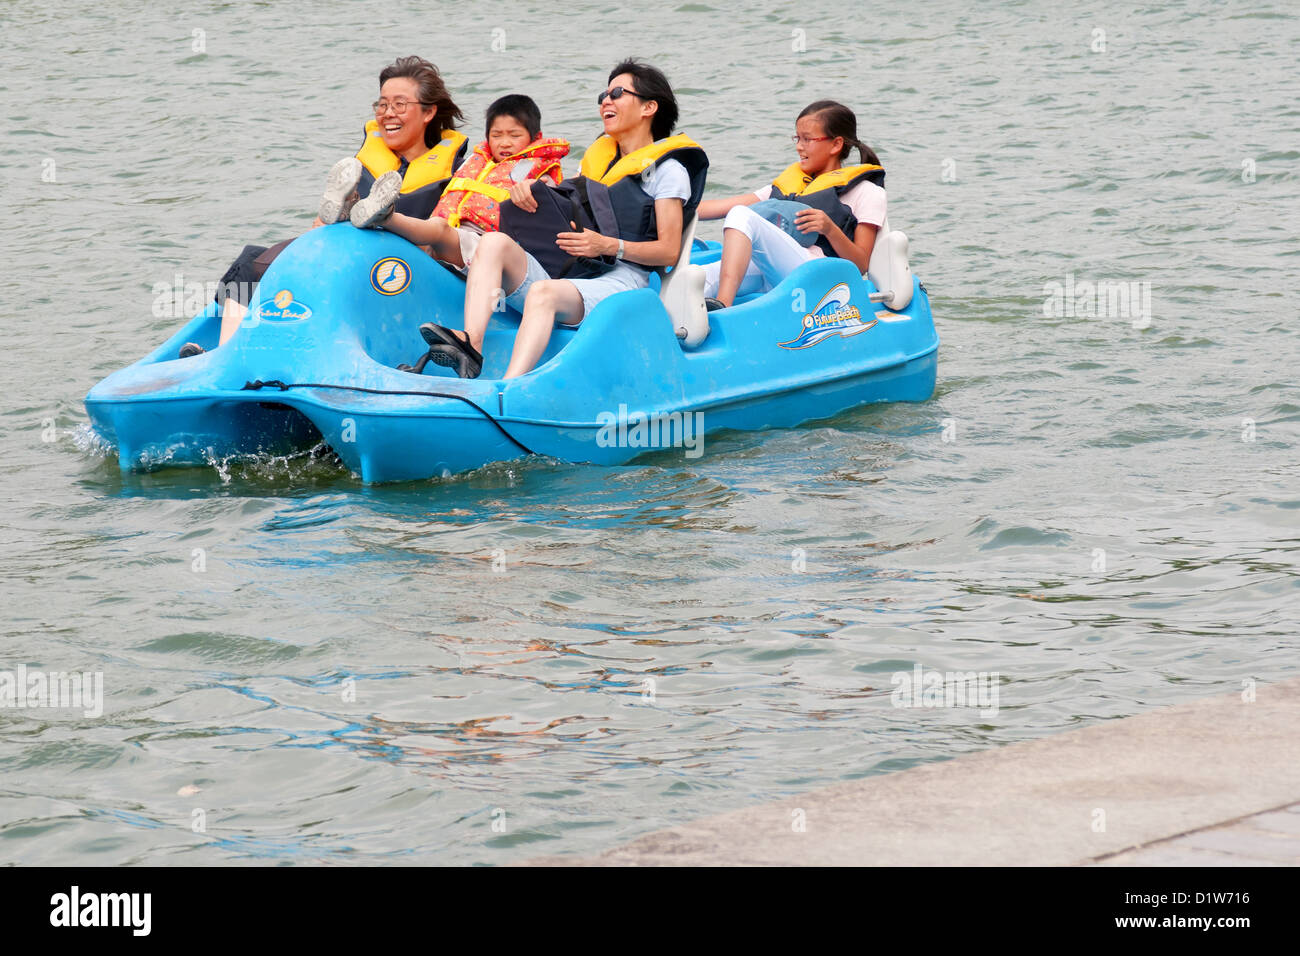 Messing about on the water, Paddle boat trip by some tourists having fun on a cold day - Stock Image